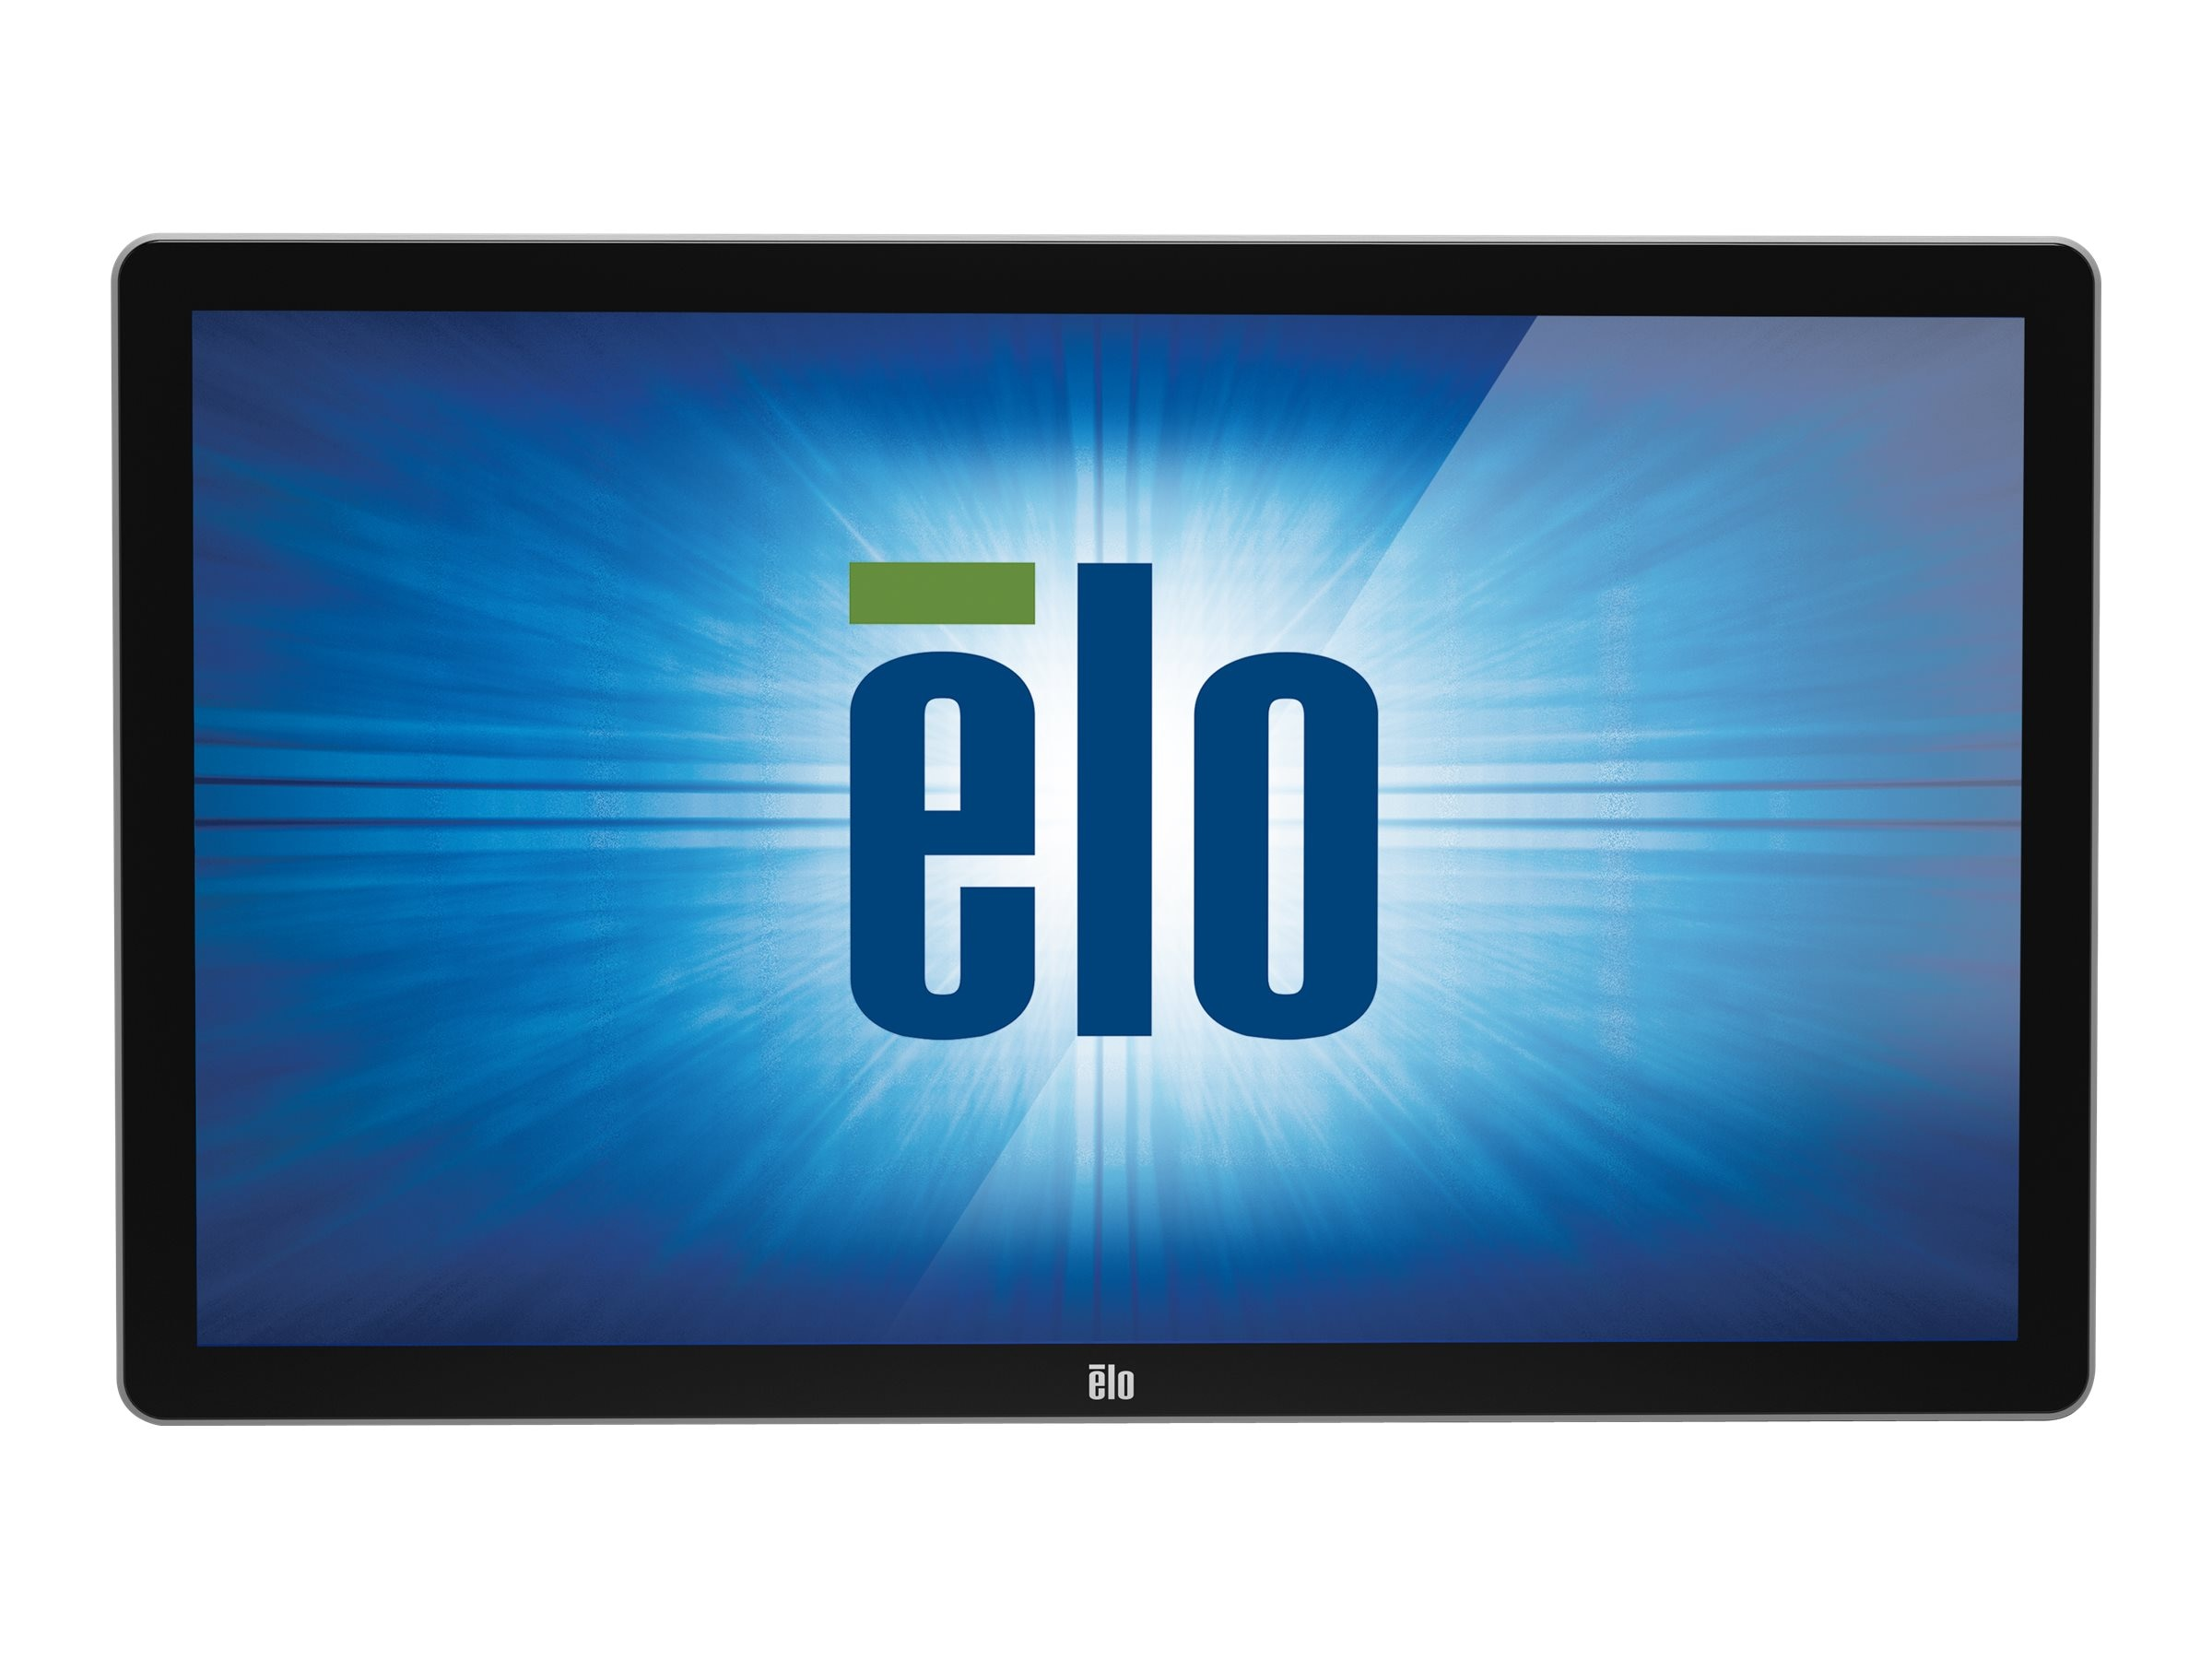 ELO Touch Solutions 32 3202L Full HD LED-LCD IR Touchscreen Display, Black, E222368, 31936899, Monitors - Large-Format LED-LCD